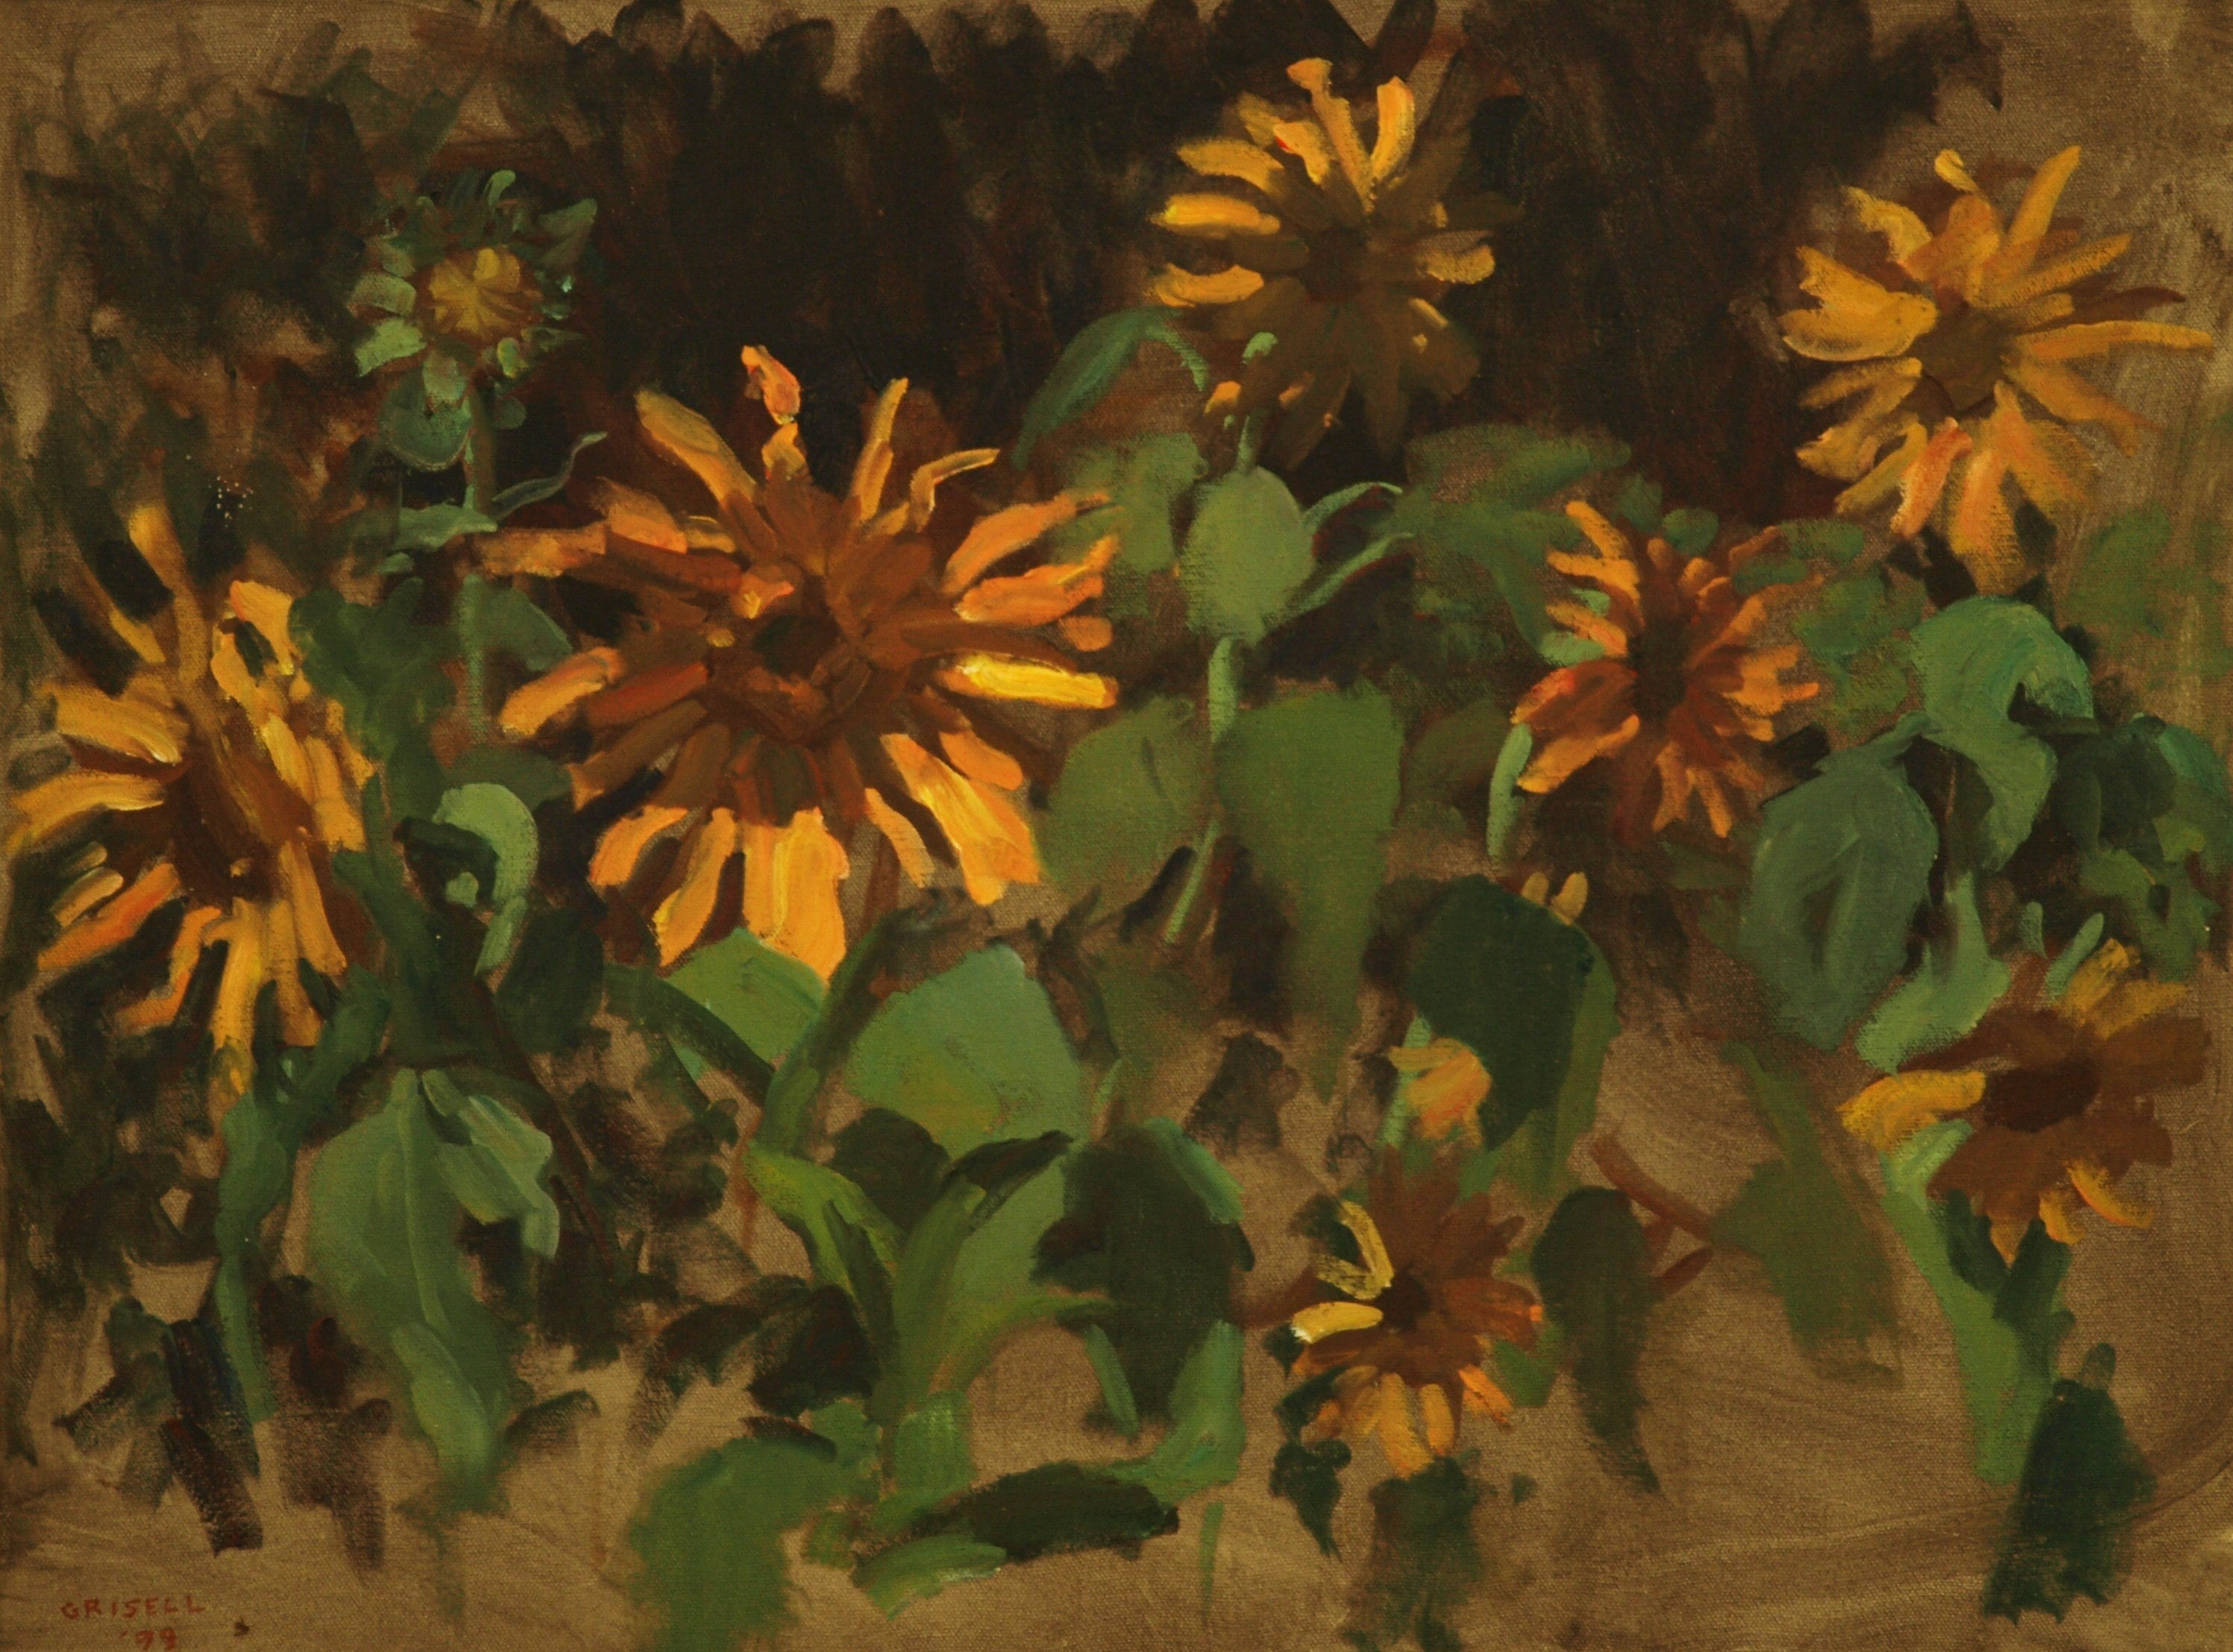 Sunflowers, Oil on Canvas, 18 x 24 Inches, by Susan Grisell, $650